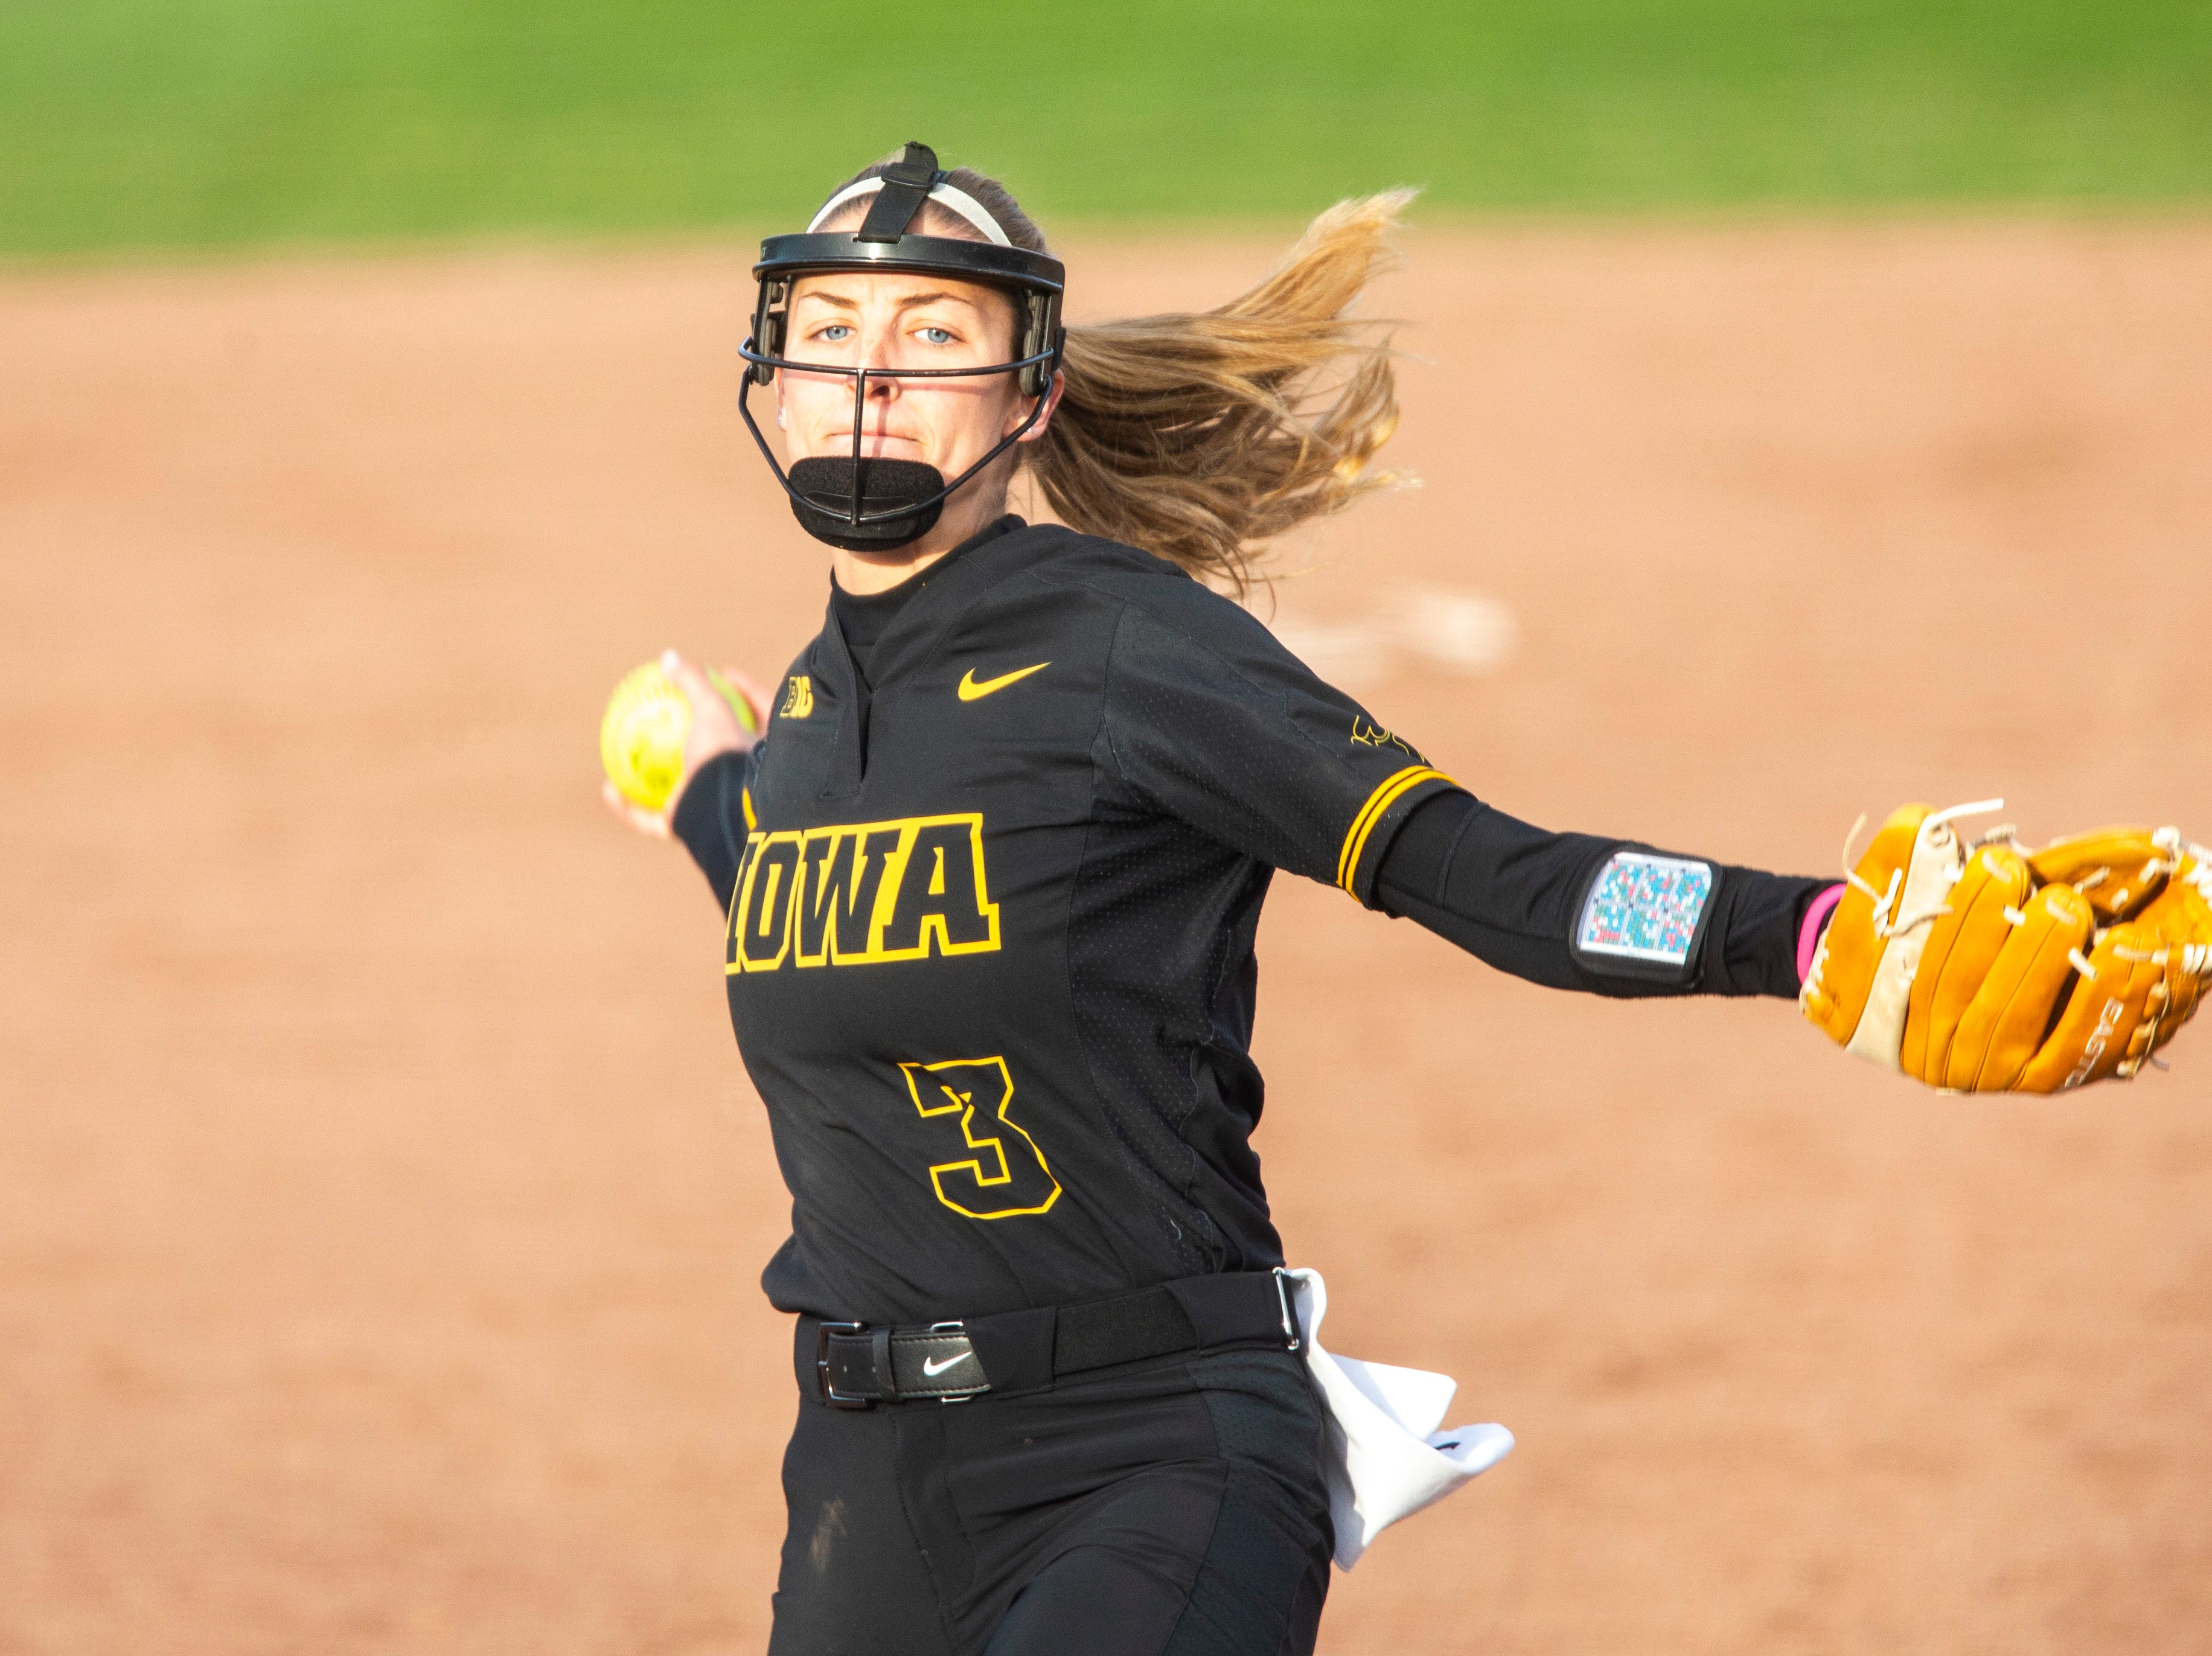 Iowa's Allison Doocy (3) delivers a pitch during a NCAA Big Ten Conference softball game on Saturday, April 13, 2019, at Bob Pearl Field in Coralville, Iowa.